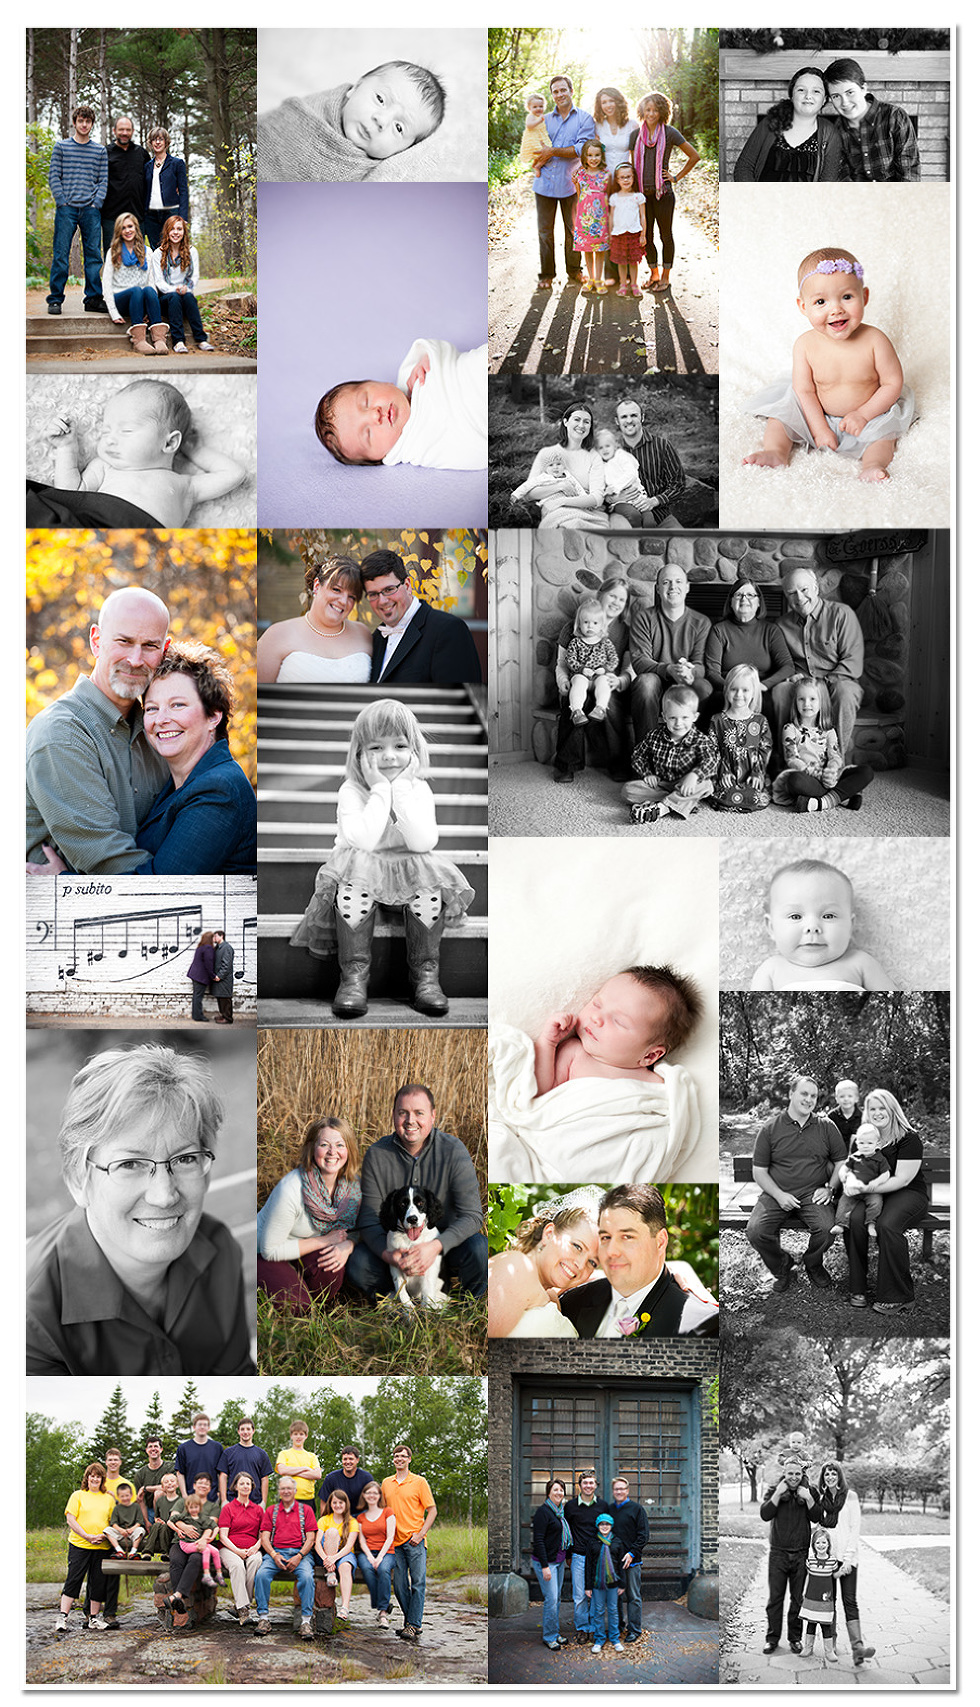 A collage of family portraits, newborn photos, head shots, wedding photos, and kids from 2012.